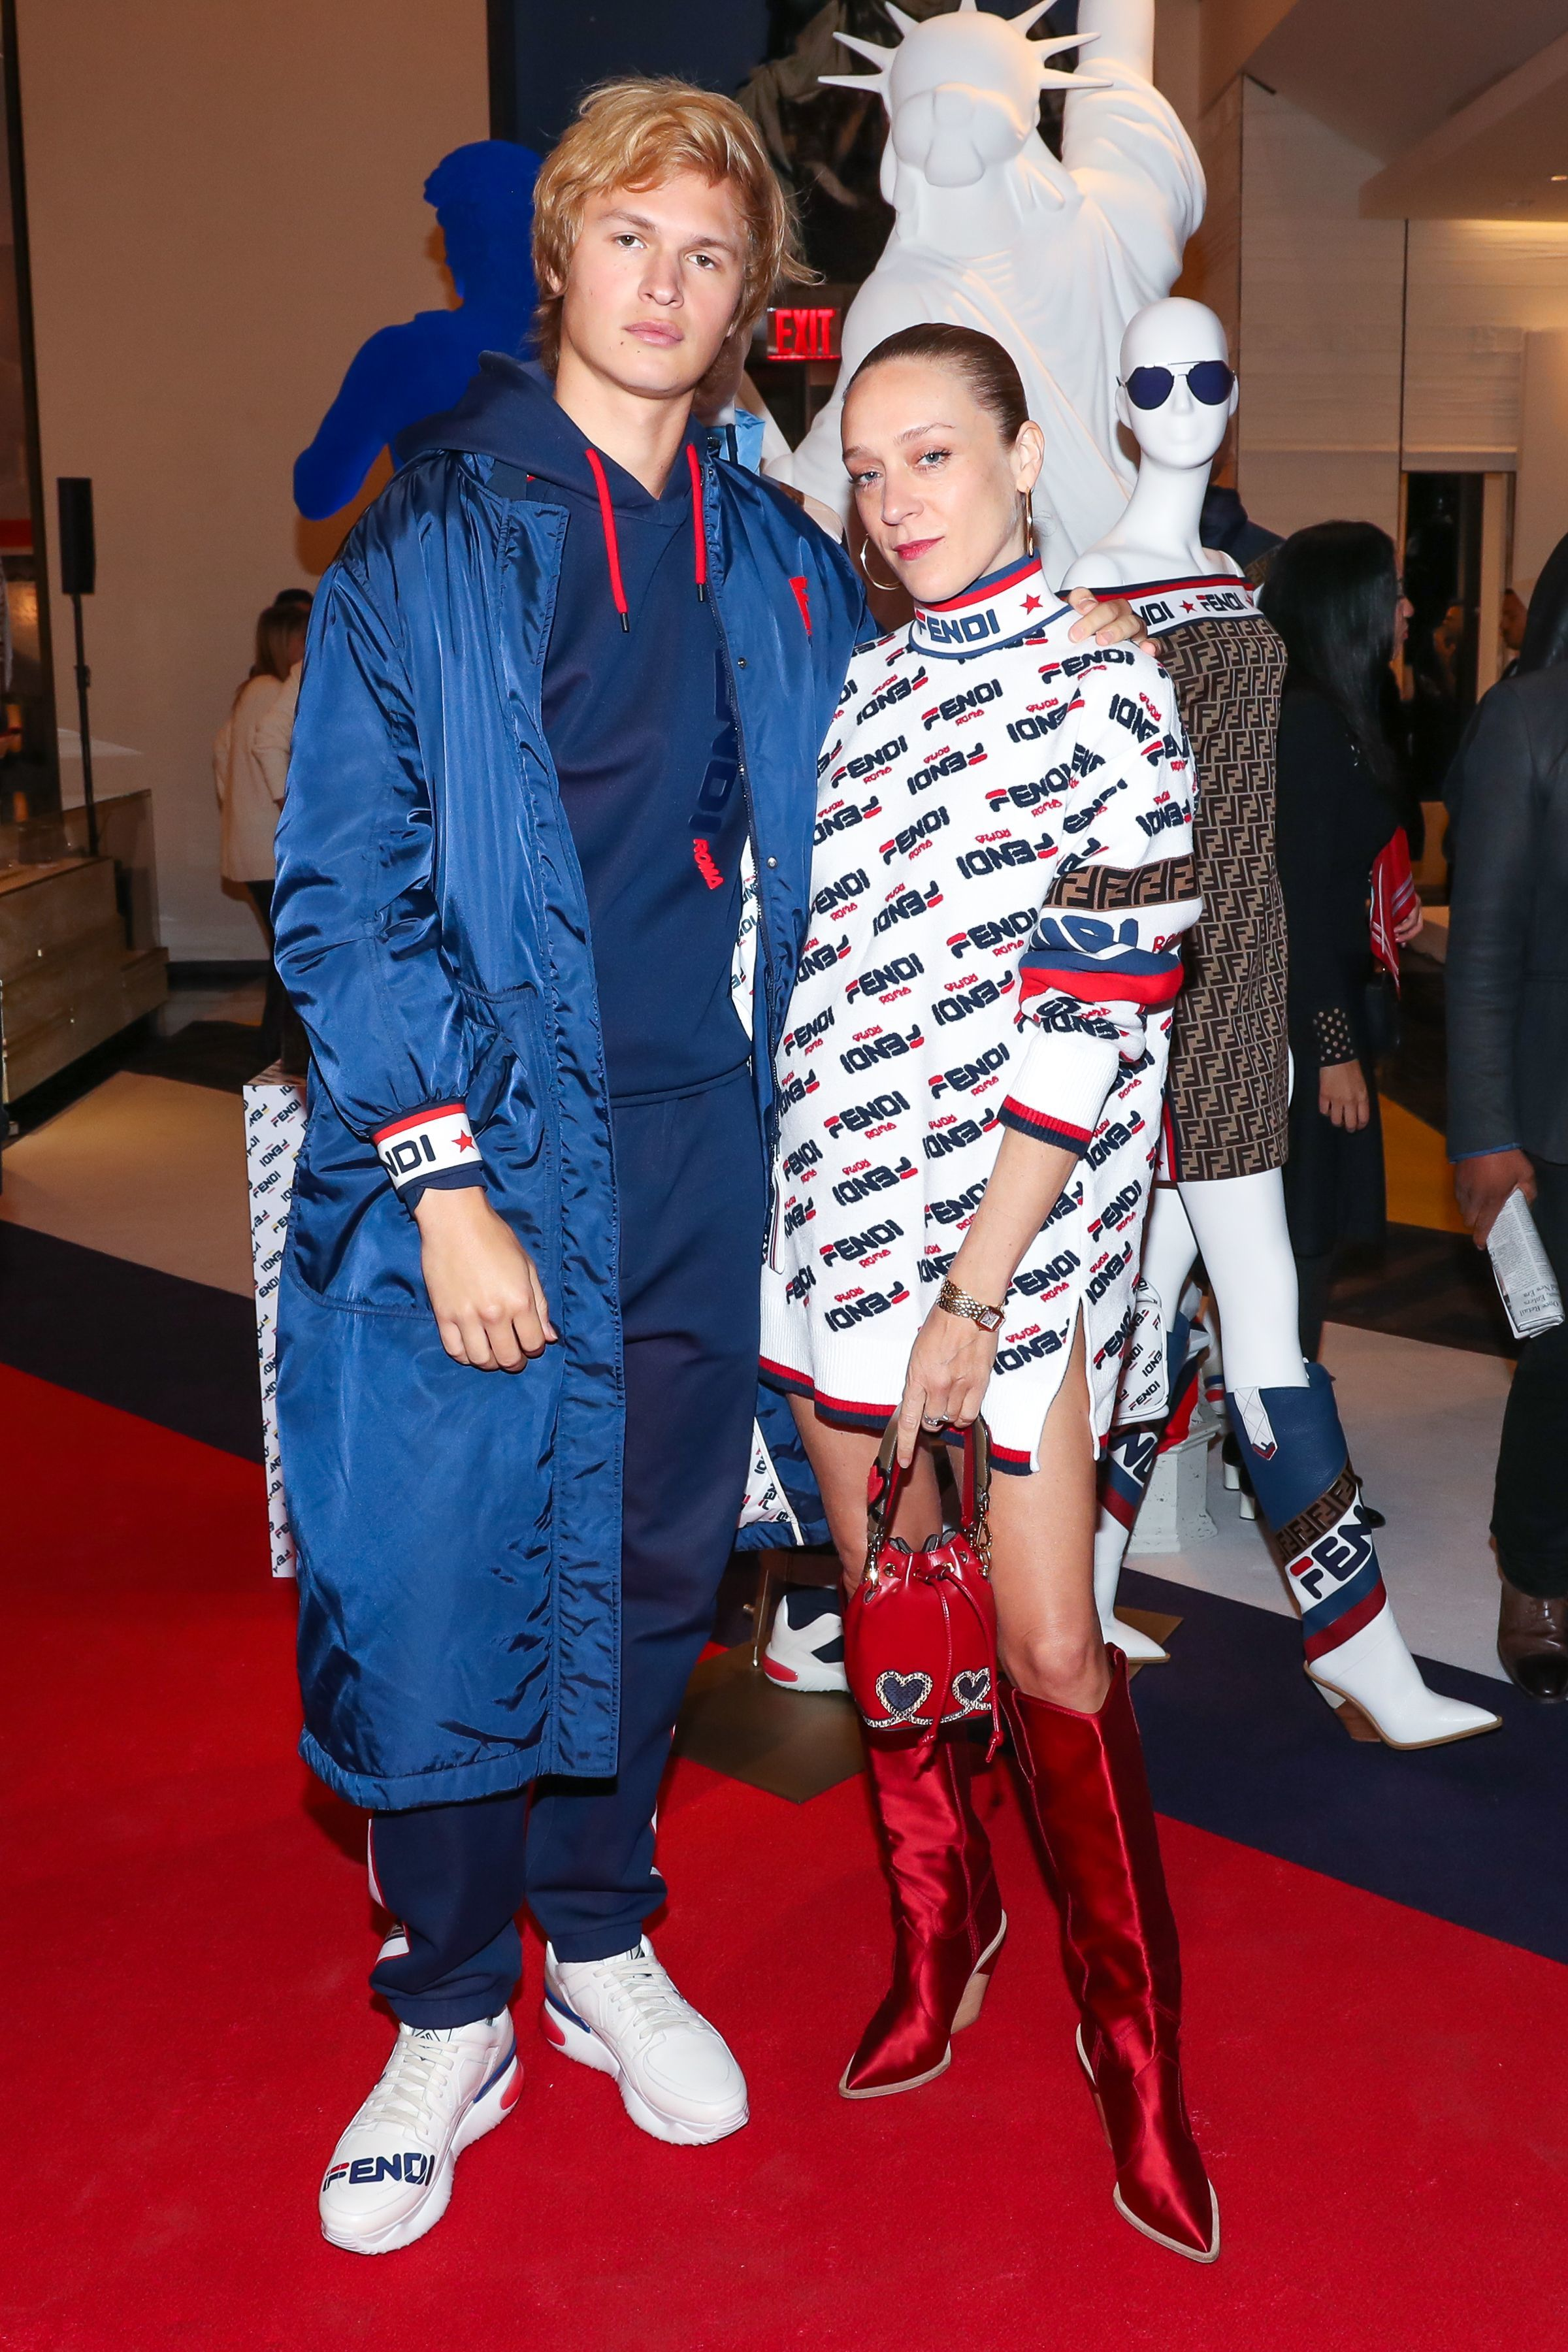 Ansel Elgort and Chloe Sevigny attend the Fendi Mania Capsule Collection Launch in New York City on Oct. 16, 2018.